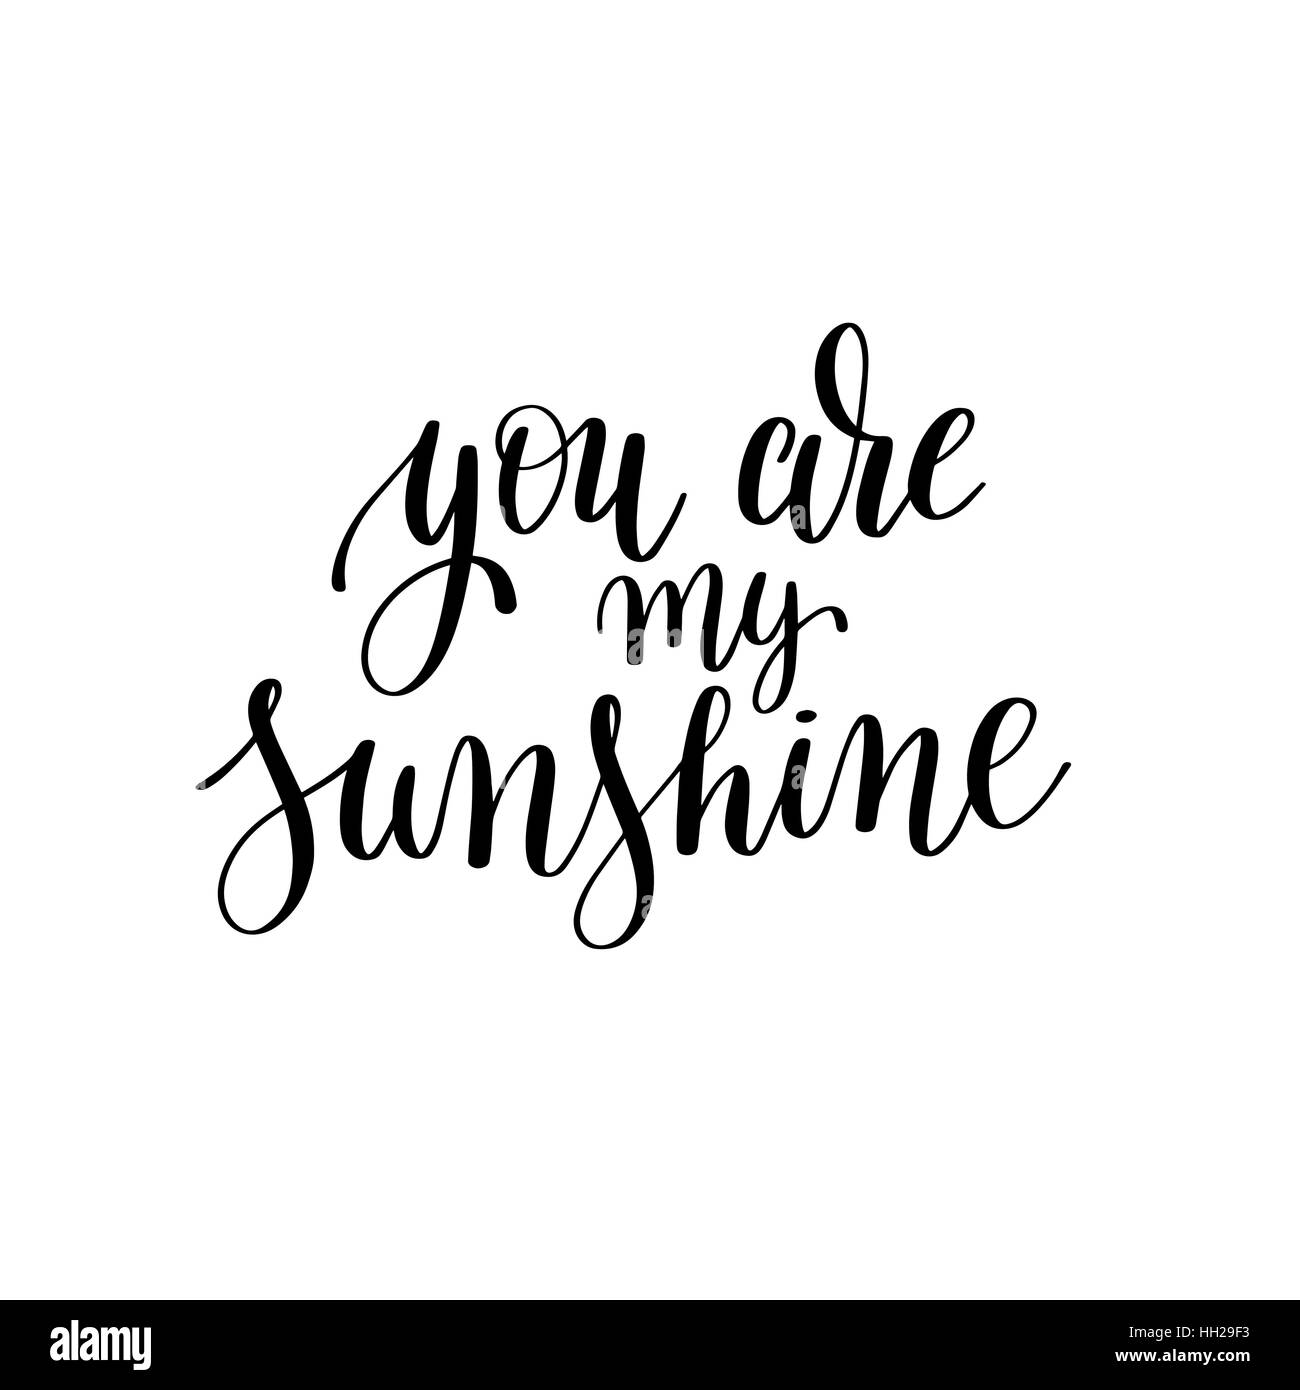 You are my sunshine black and white hand written lettering